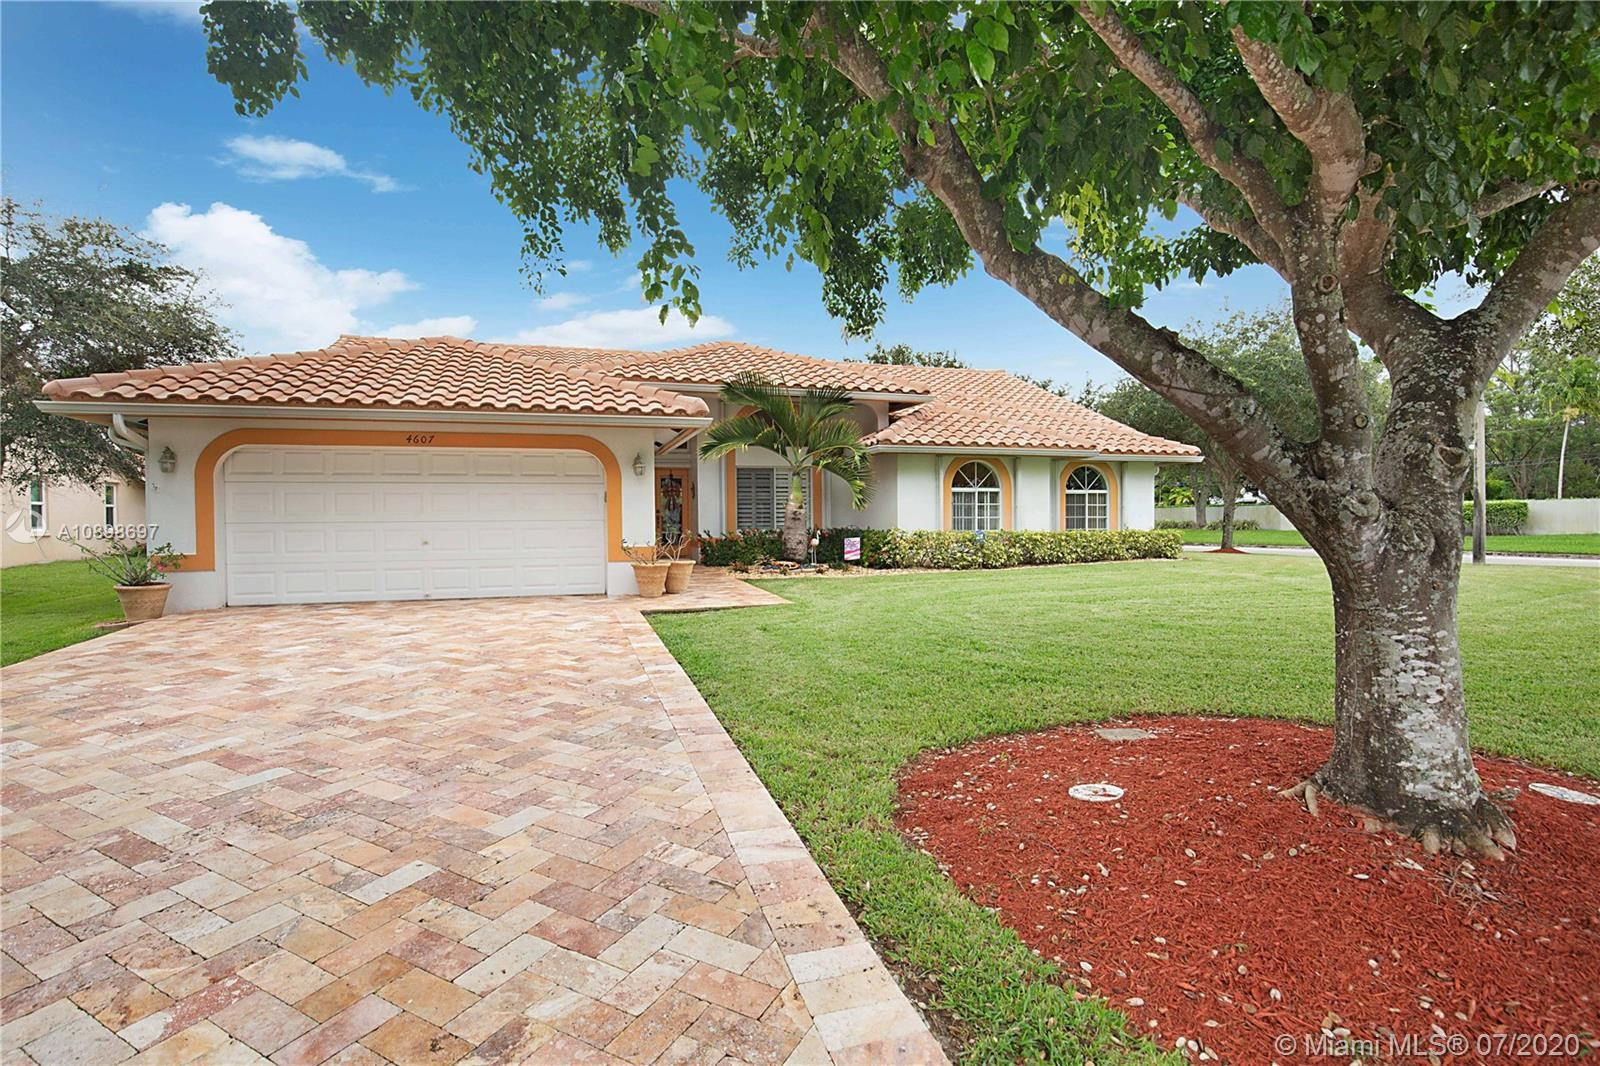 4607 NW 98th Ln, Coral Springs, FL 33076 - #: A10898697